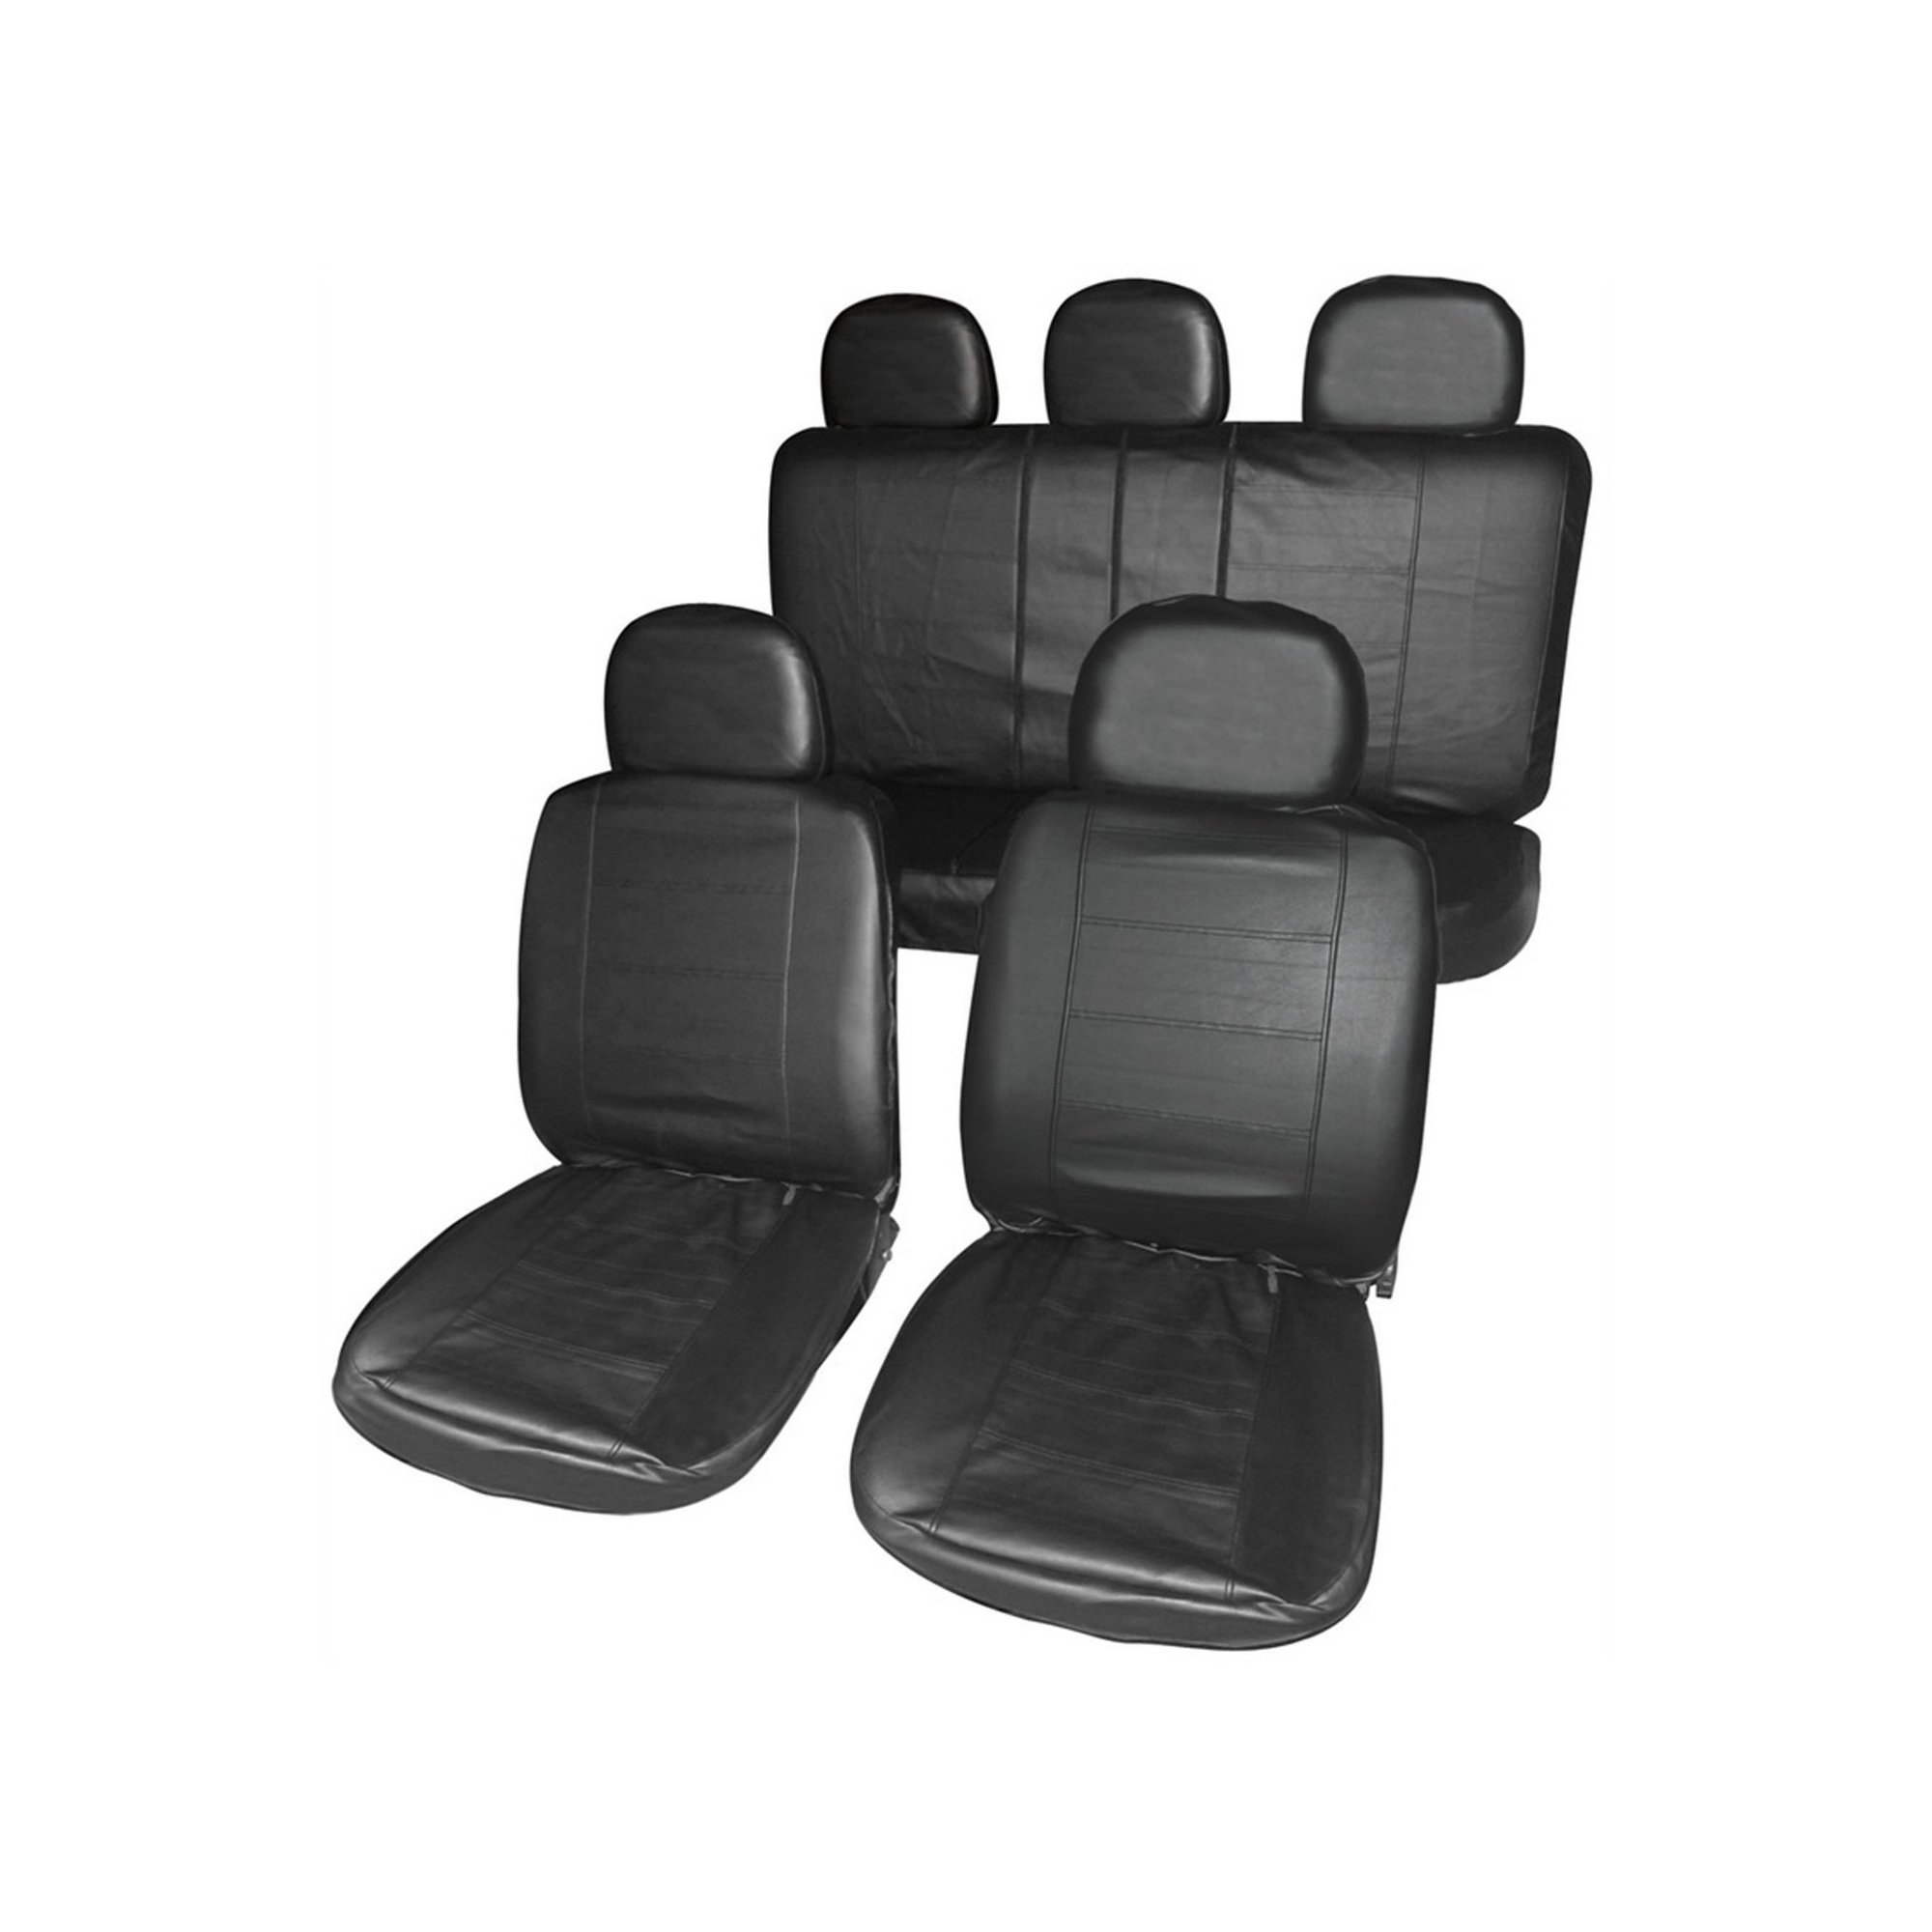 Image of Leather Look Seat Covers